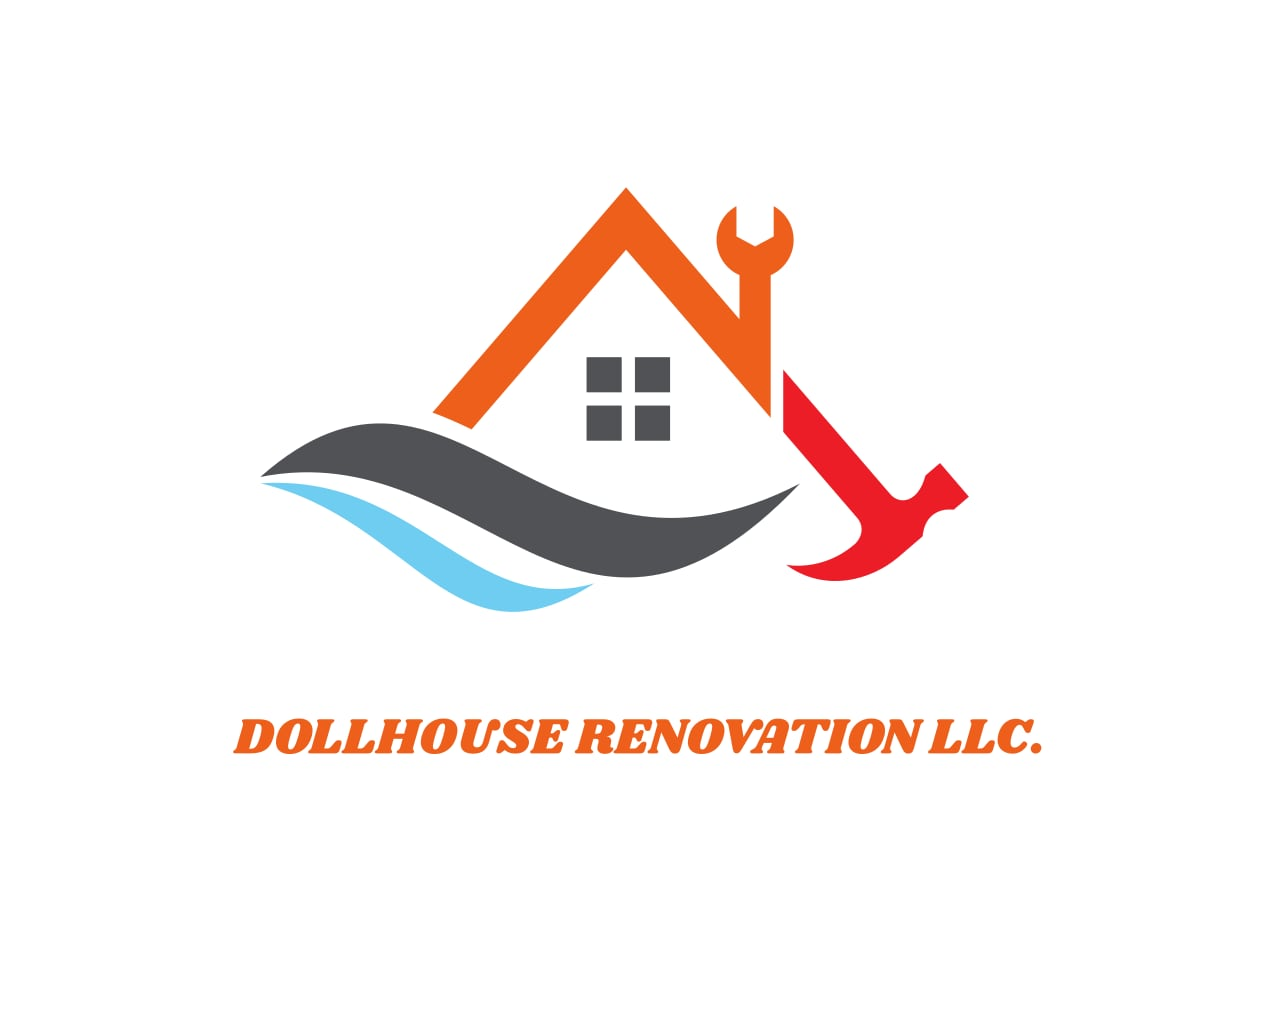 Dollhouse Renovations LLC